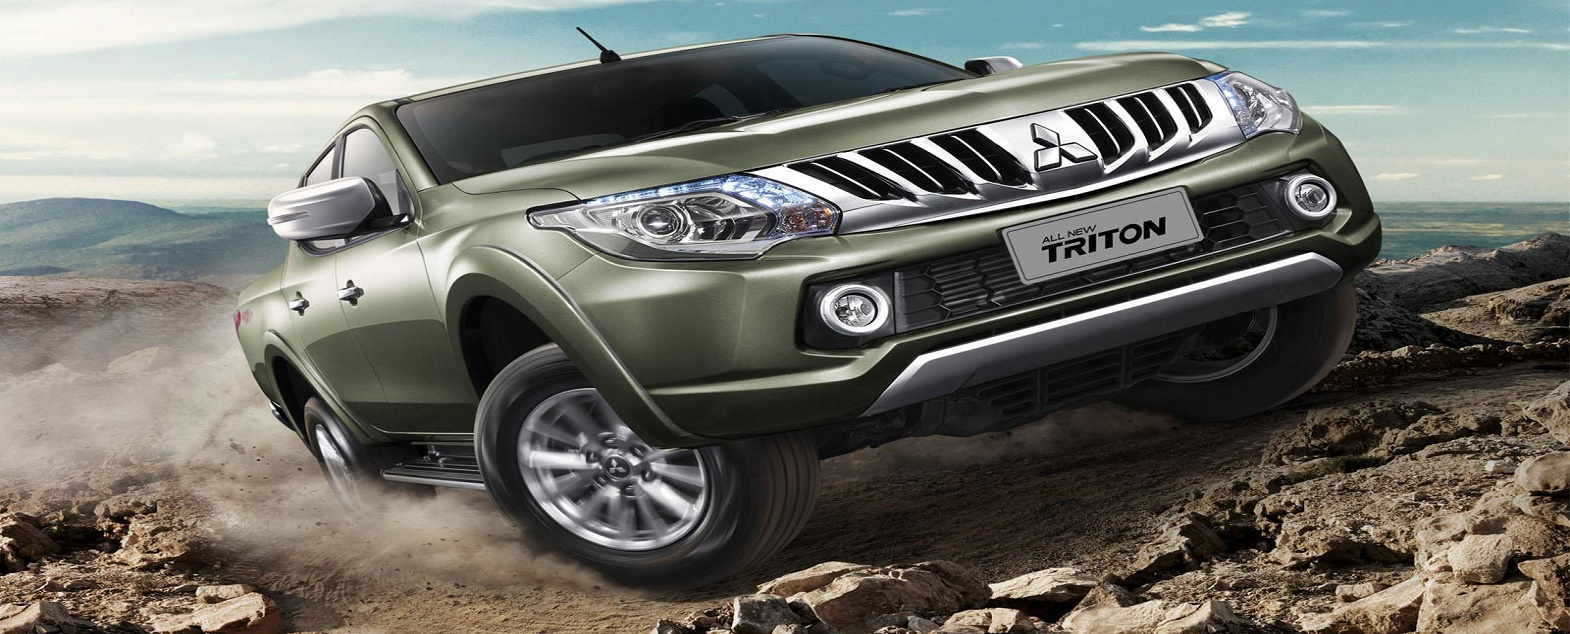 Toyota Hilux Revo Thailand Exporters 4x4 Cheapest Prices